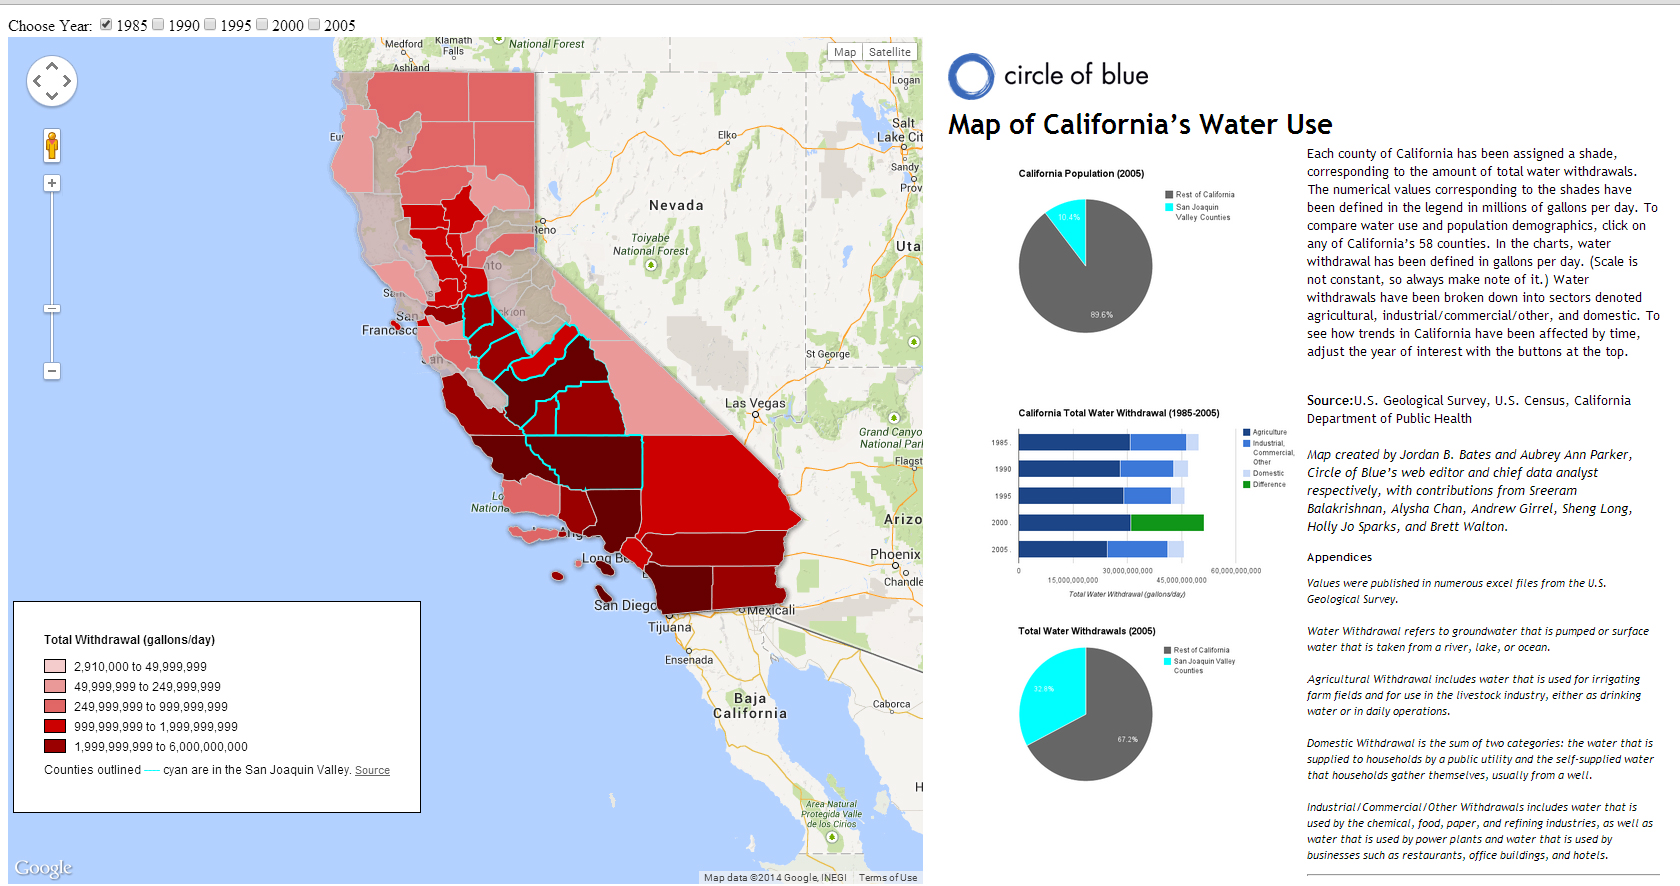 Map Californias Water Use Per County 19852005 Circle of Blue